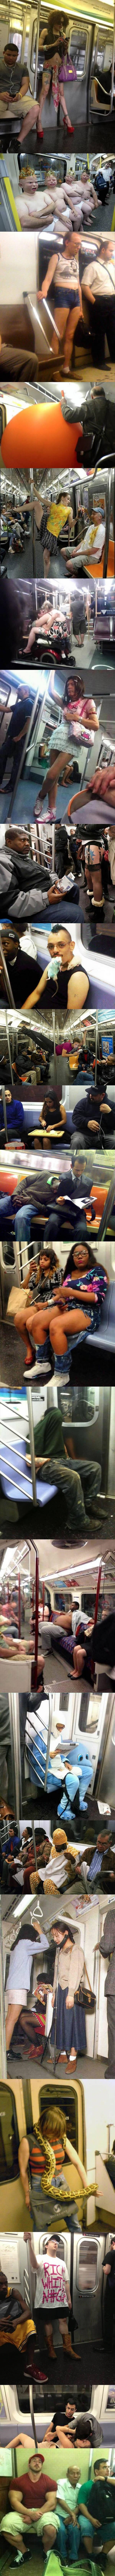 funny-compilation-subway-people